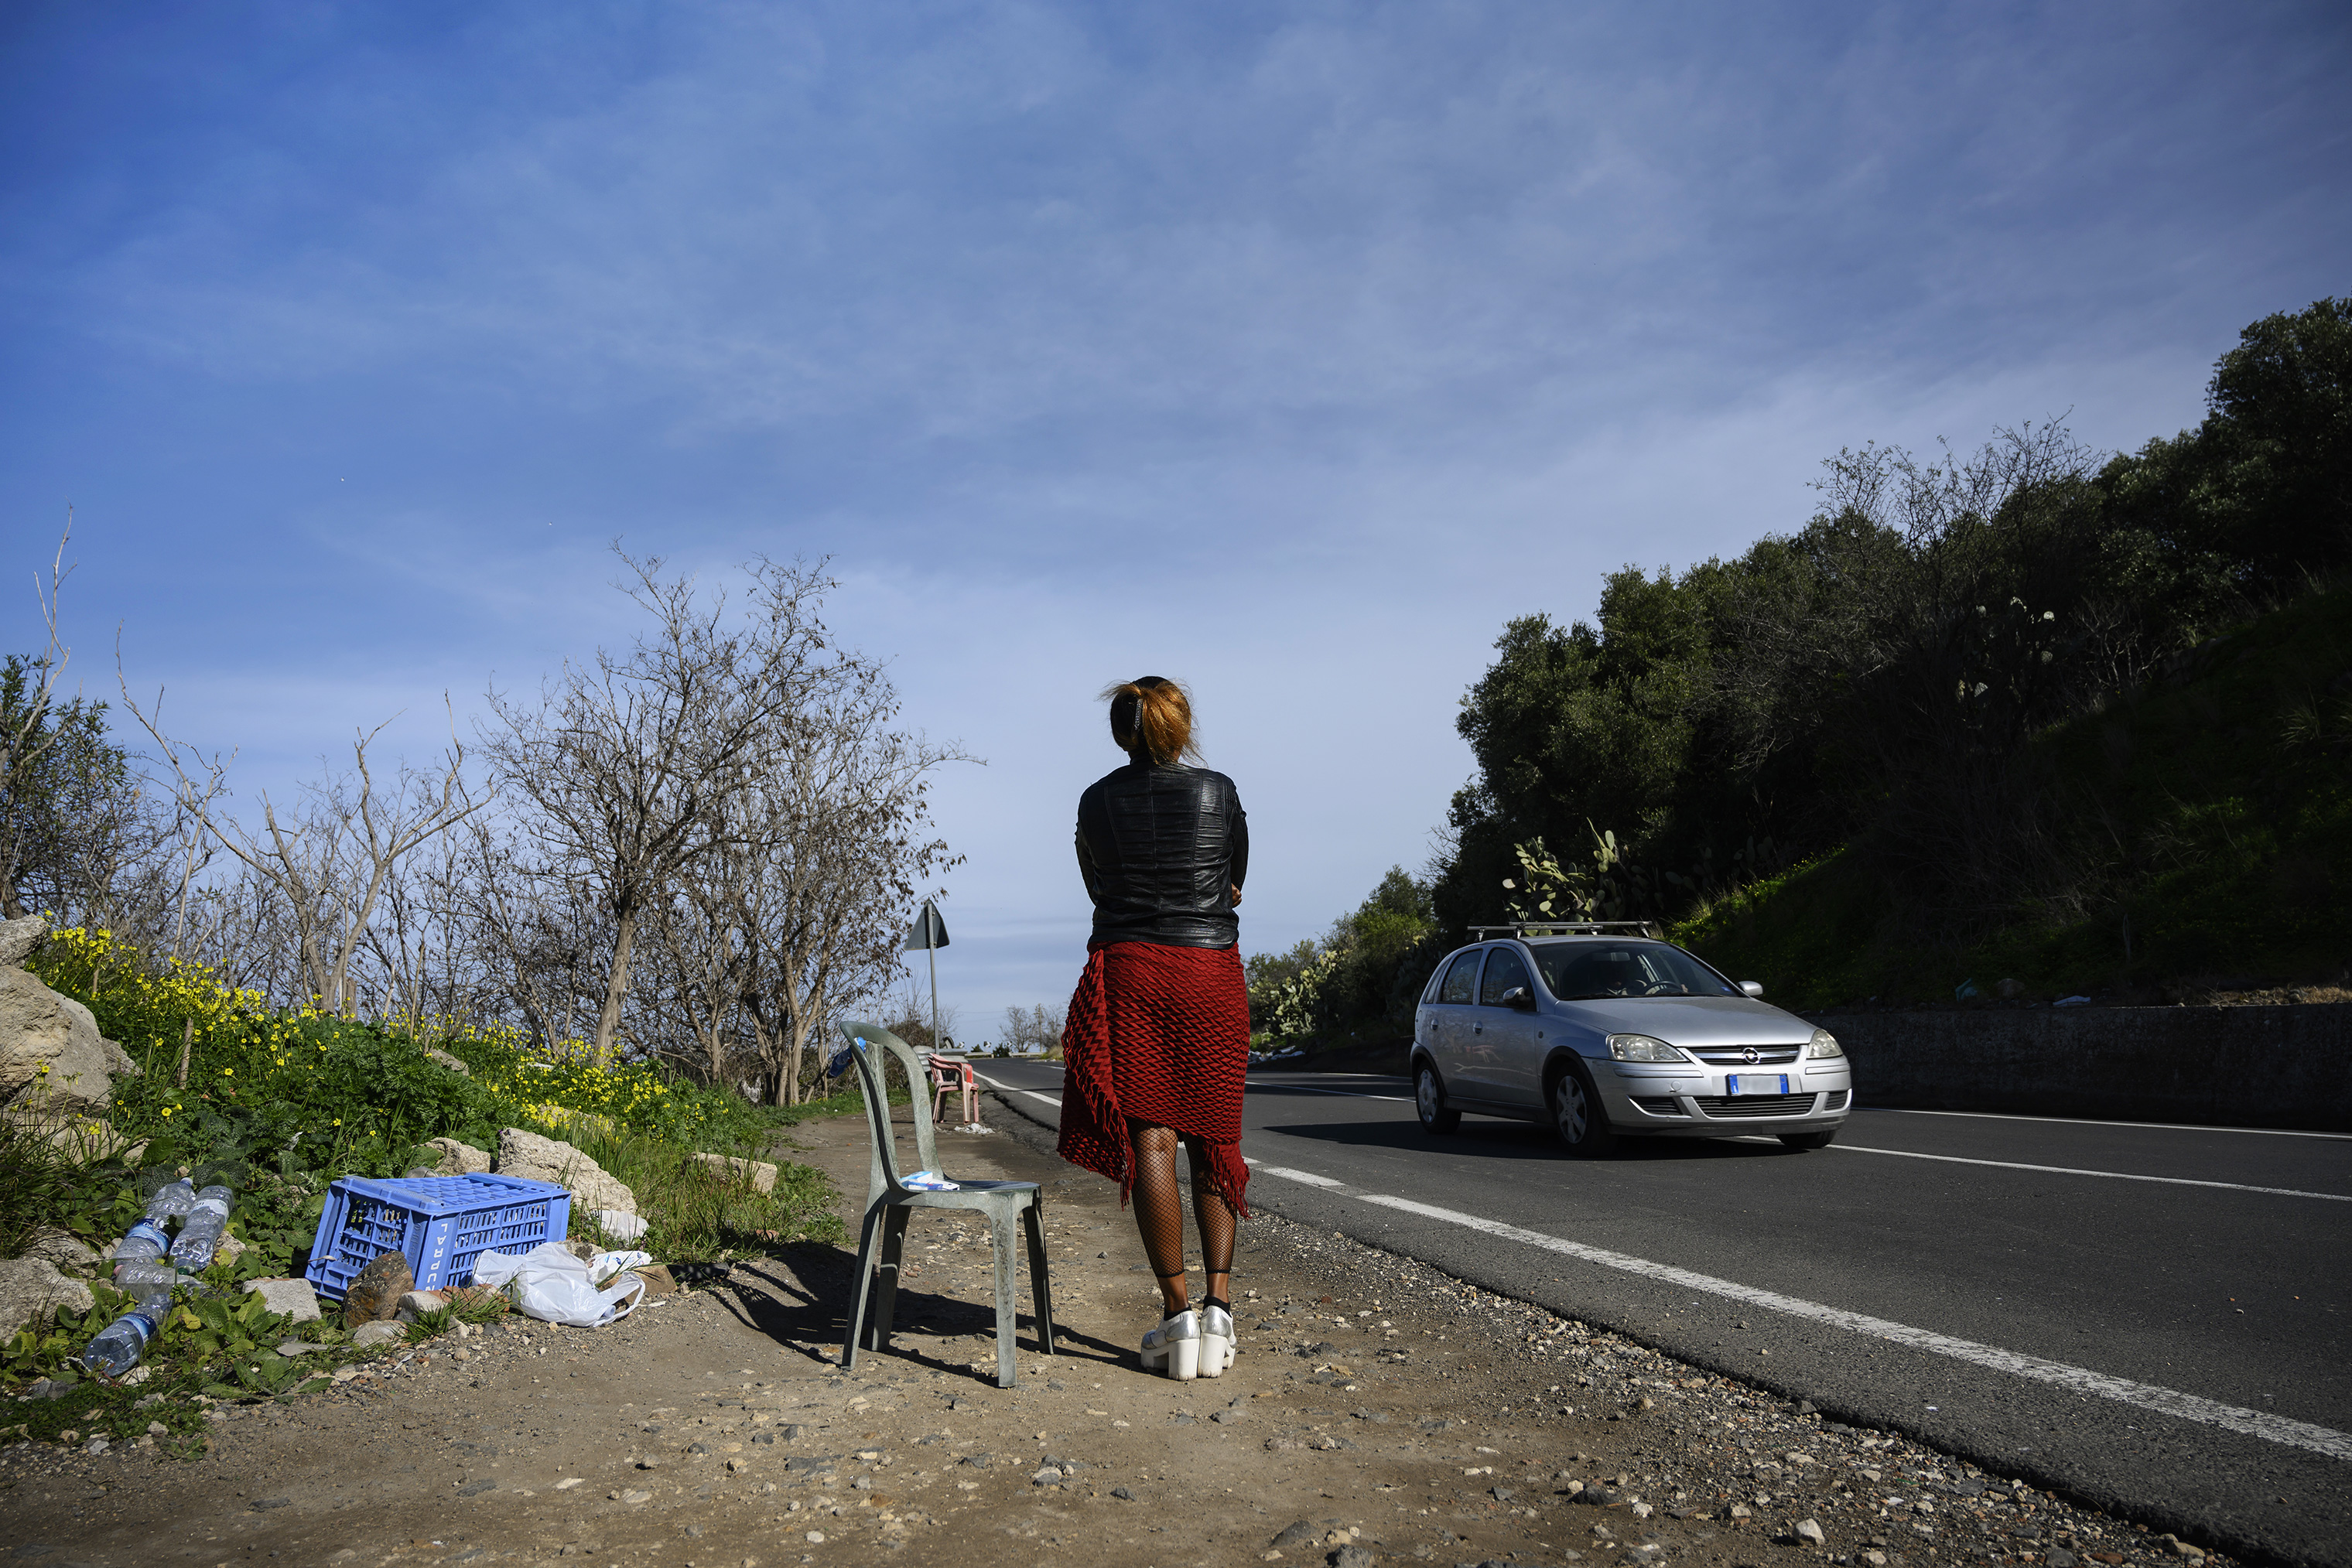 Blessing, 29, a Nigerian woman trafficked into sex work, waits for customers in Sicily, Italy